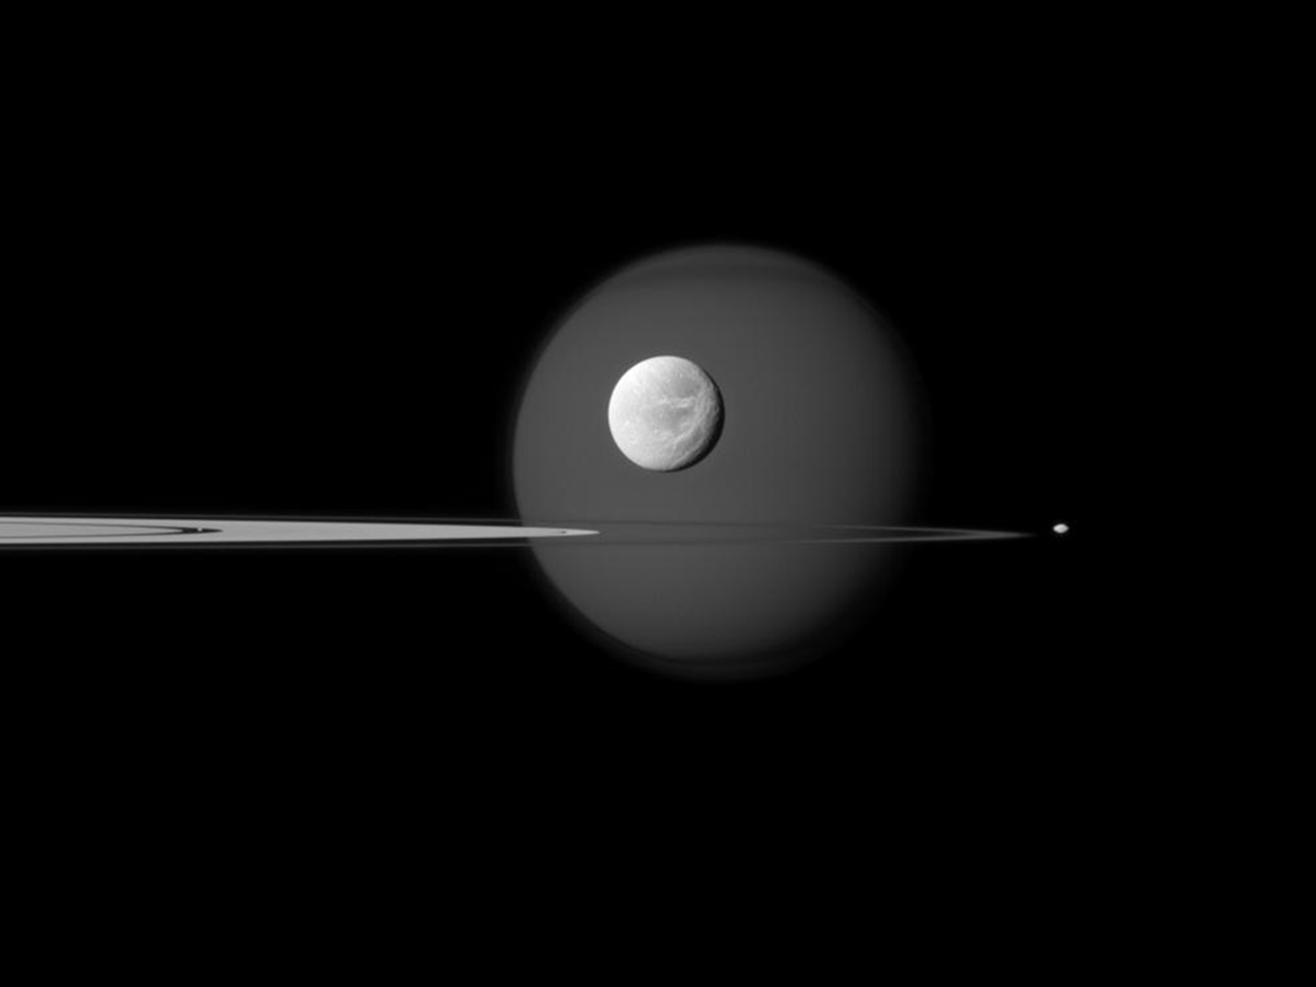 saturn's new moon